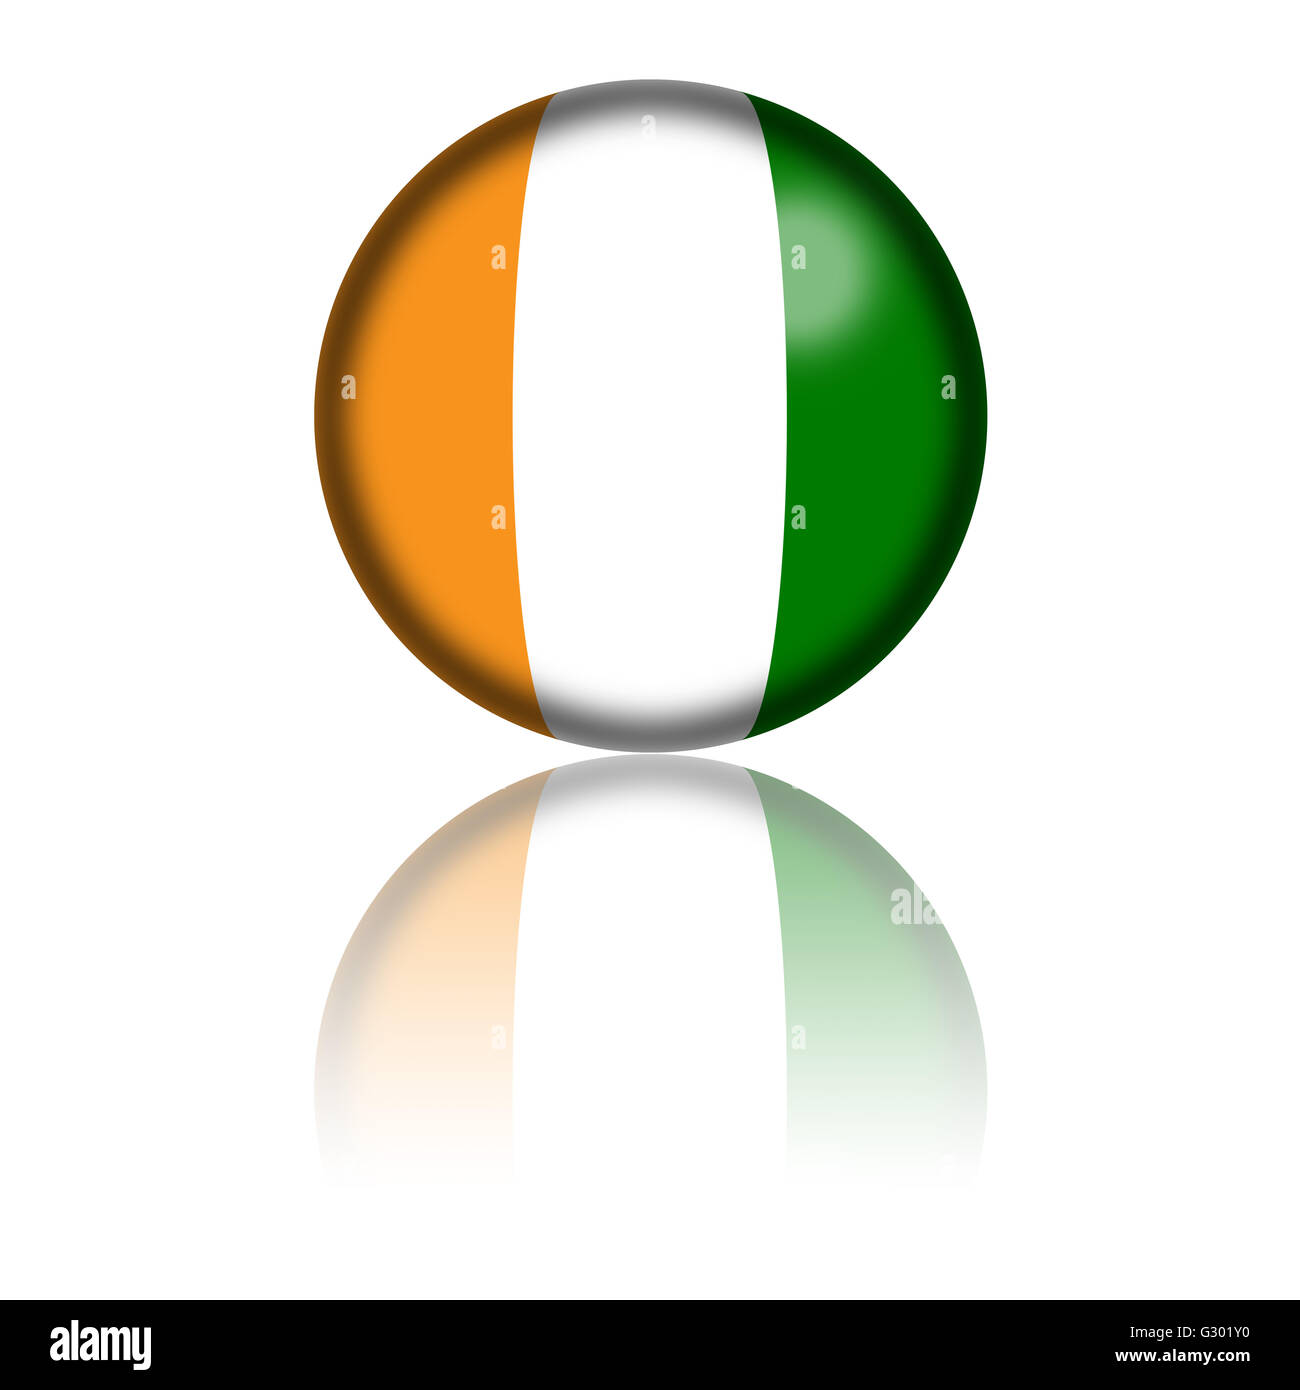 3D sphere or badge of Cote d'Ivoire flag with reflection at bottom. - Stock Image